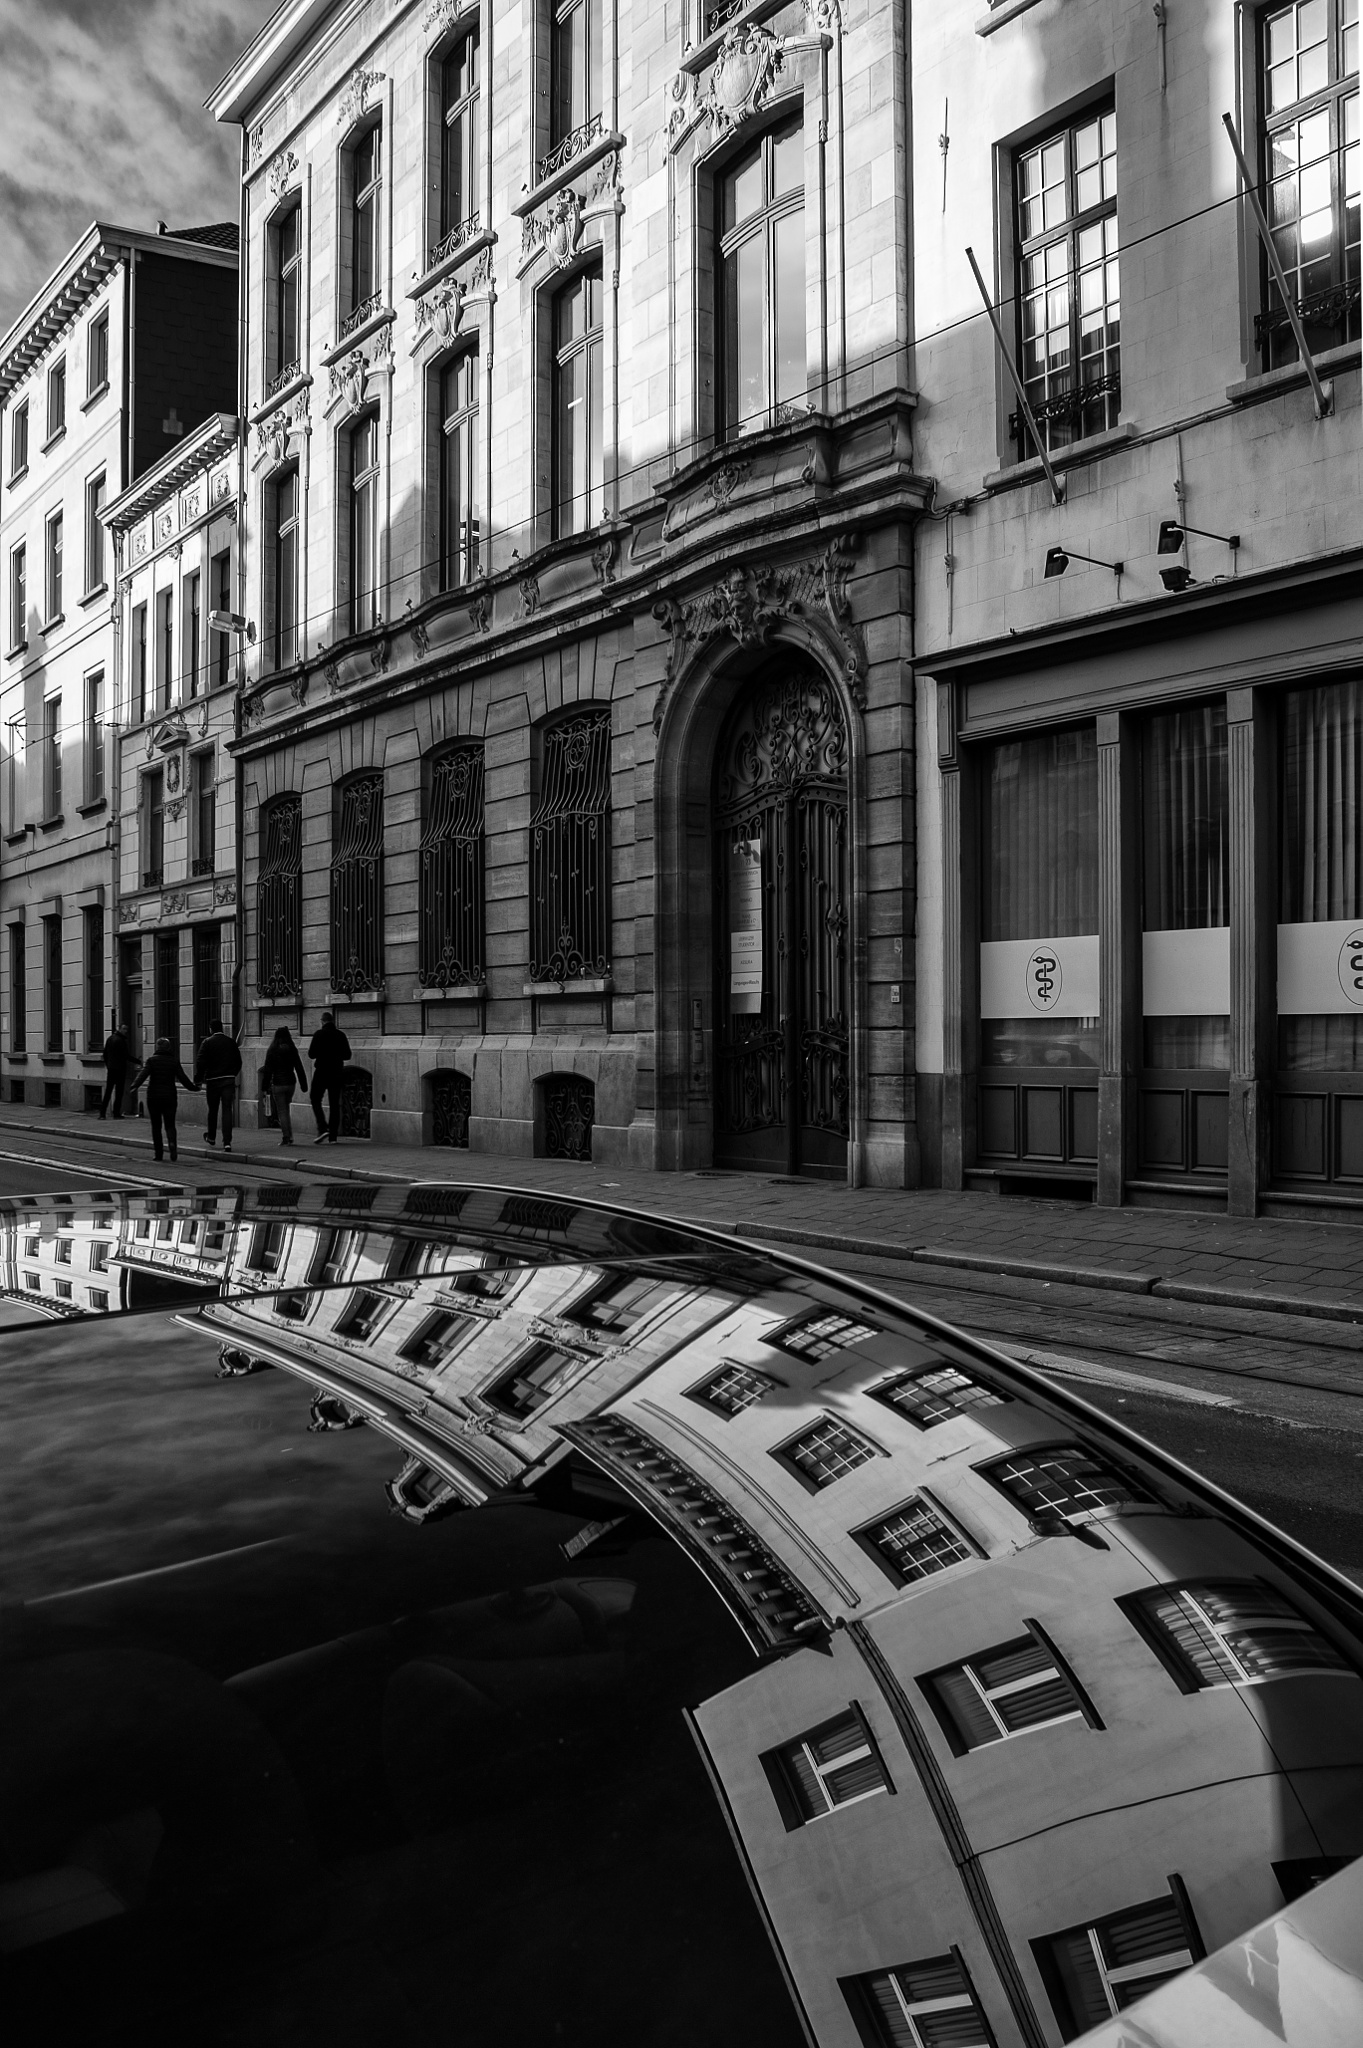 Architecture reflections in Antwerpen by Paul Hoogeveen Photography